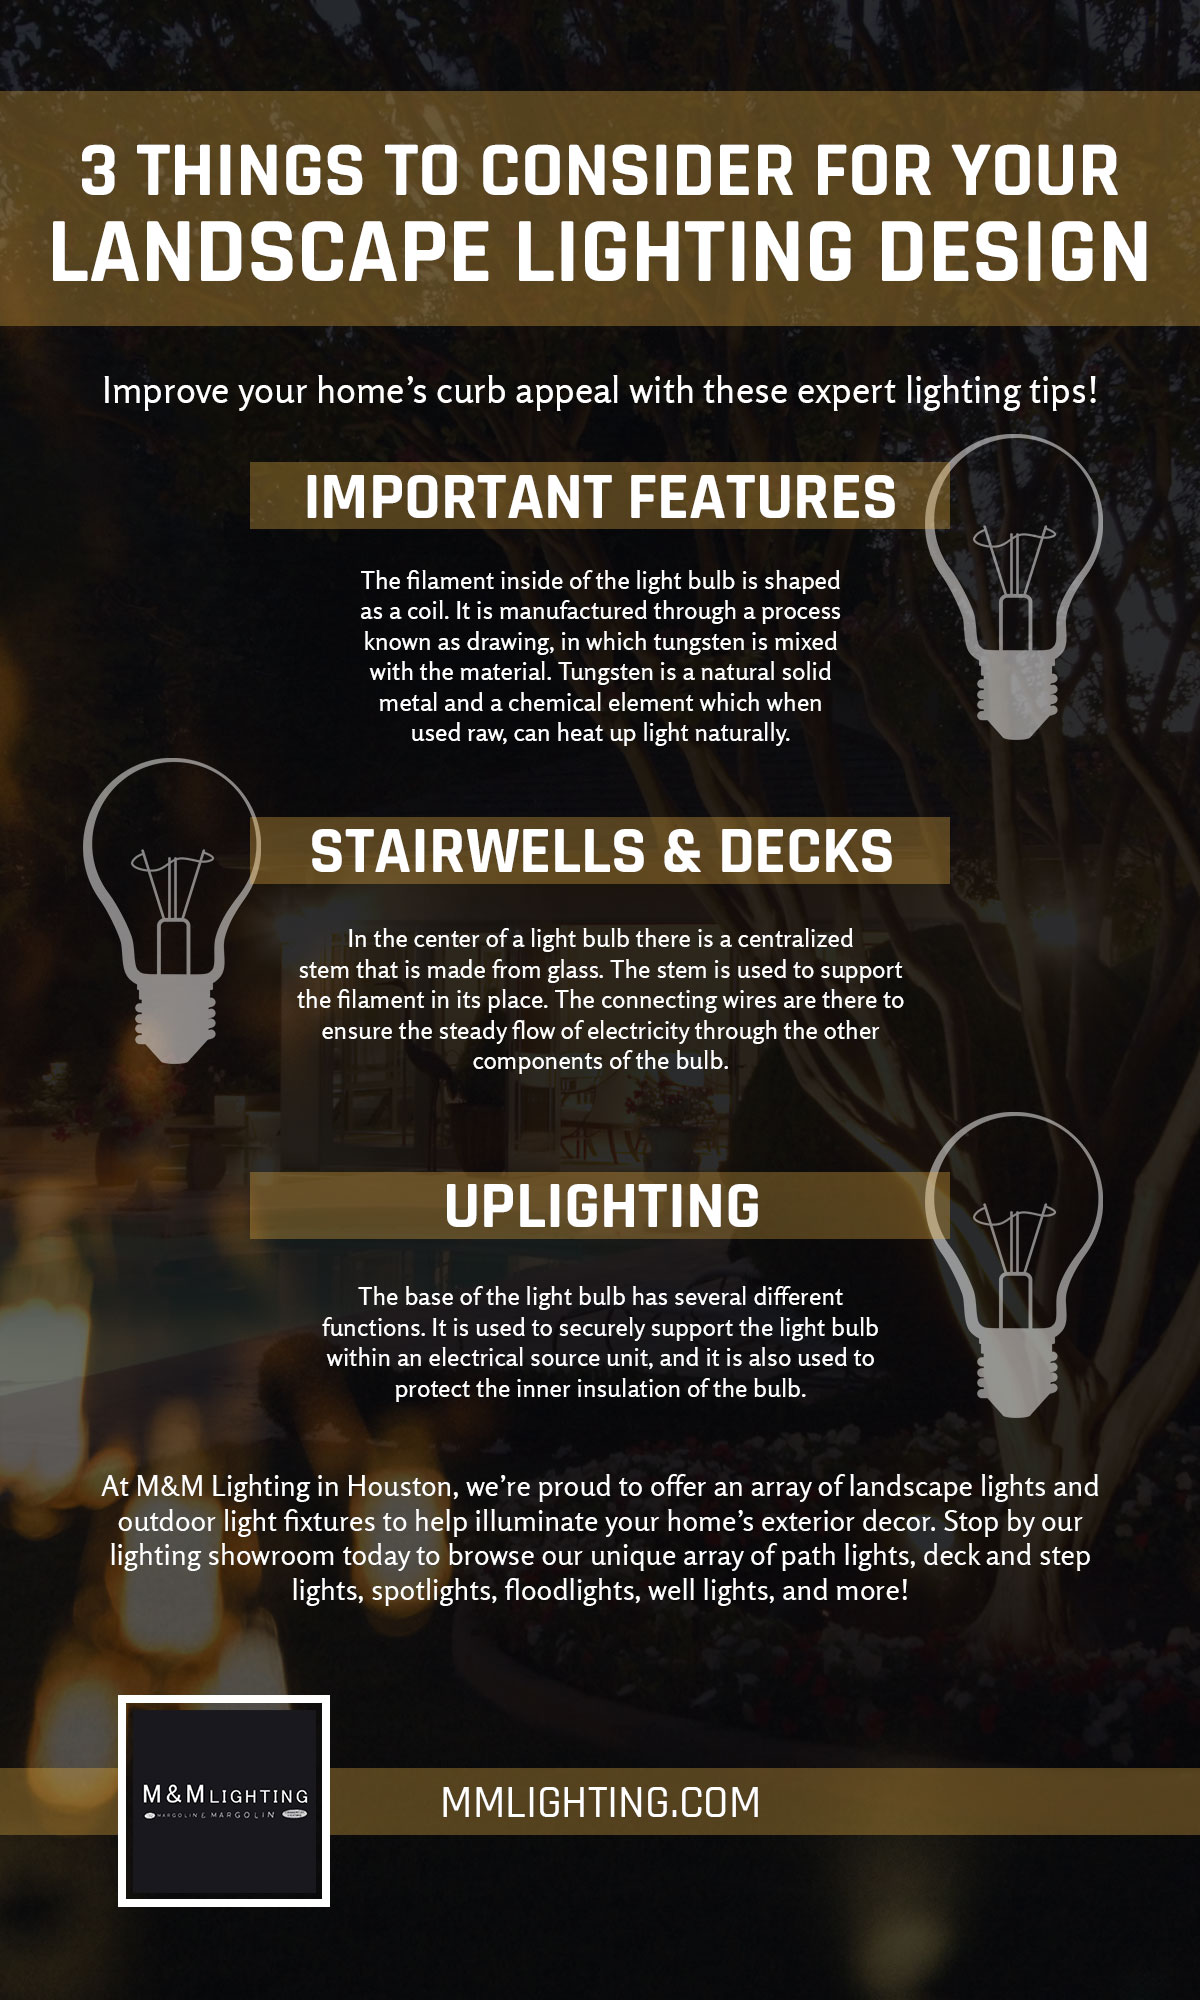 outdoor lights texas top landscape lighting tips to improve your